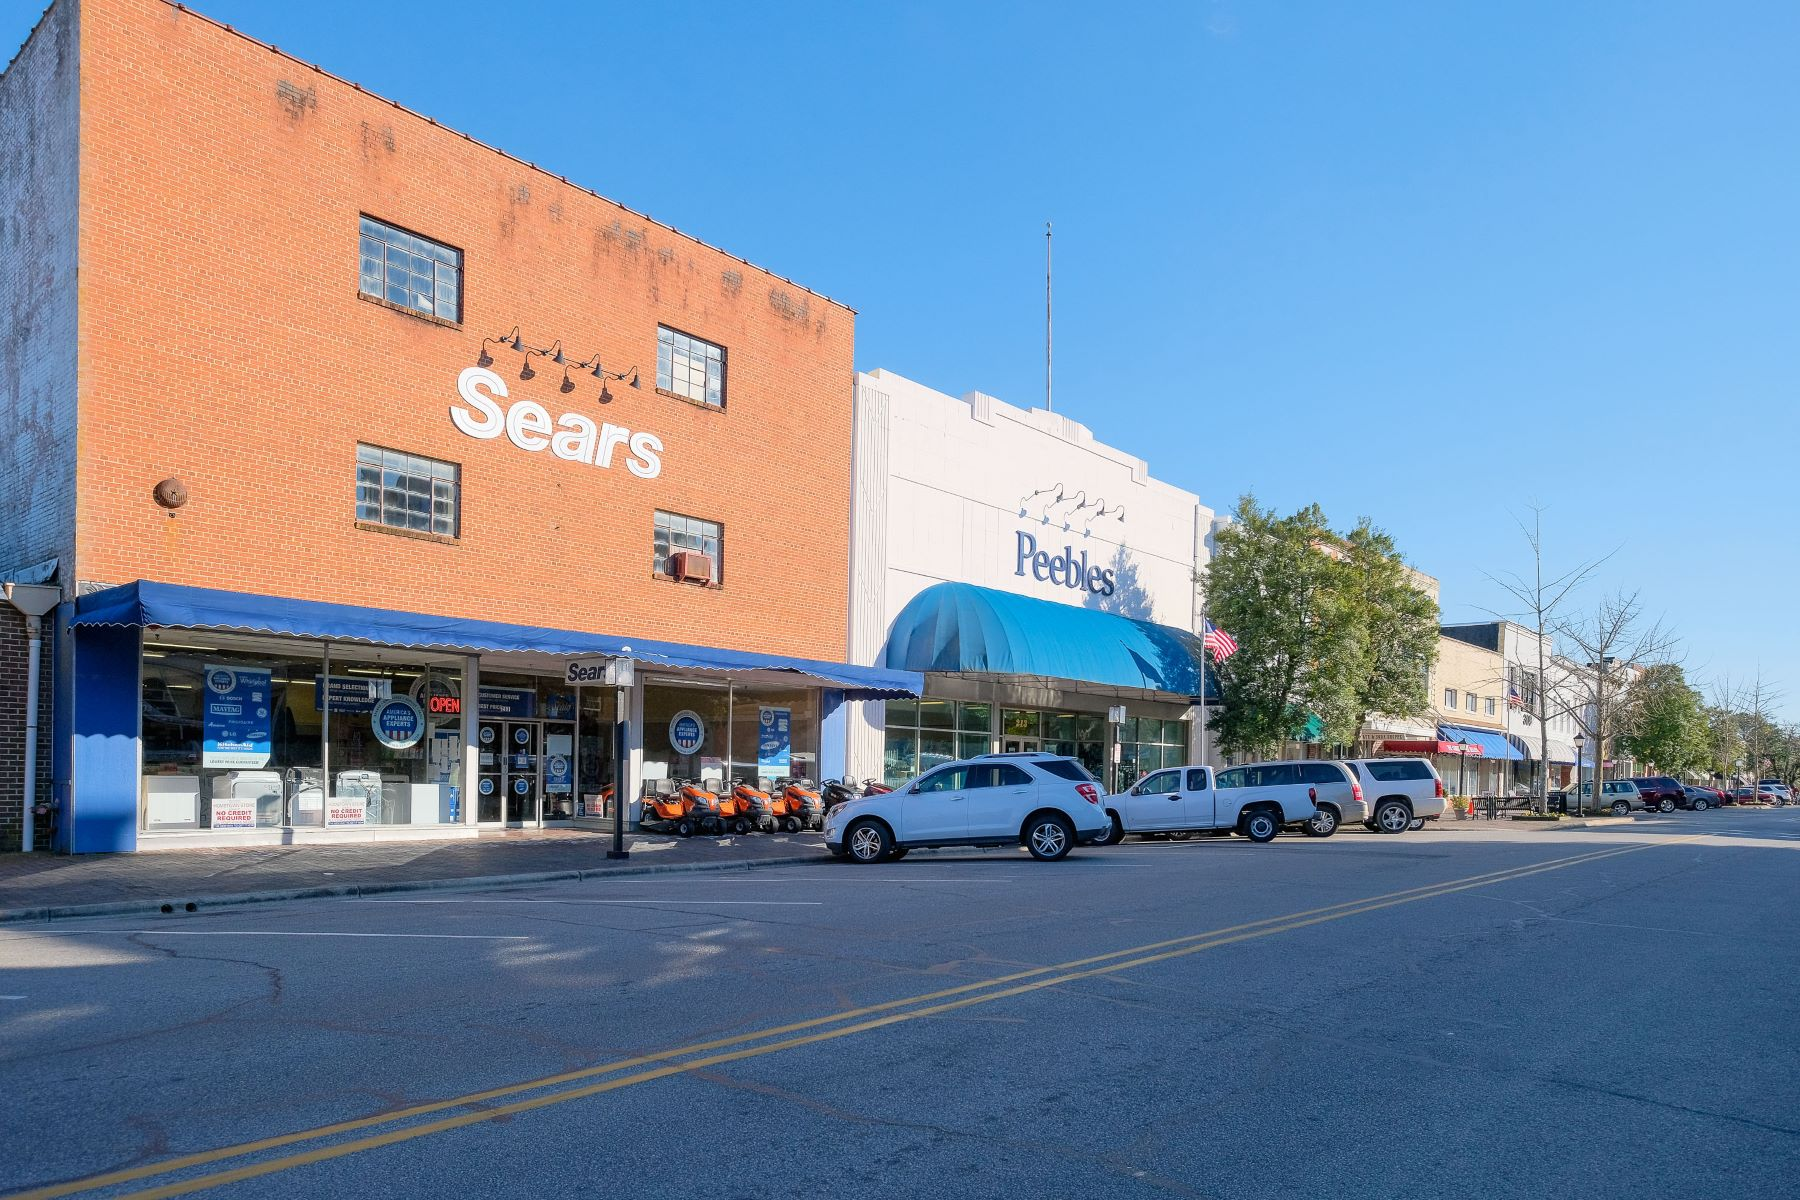 Additional photo for property listing at Sears Building Main Street Edenton 211 S Broad St Edenton, North Carolina 27932 United States